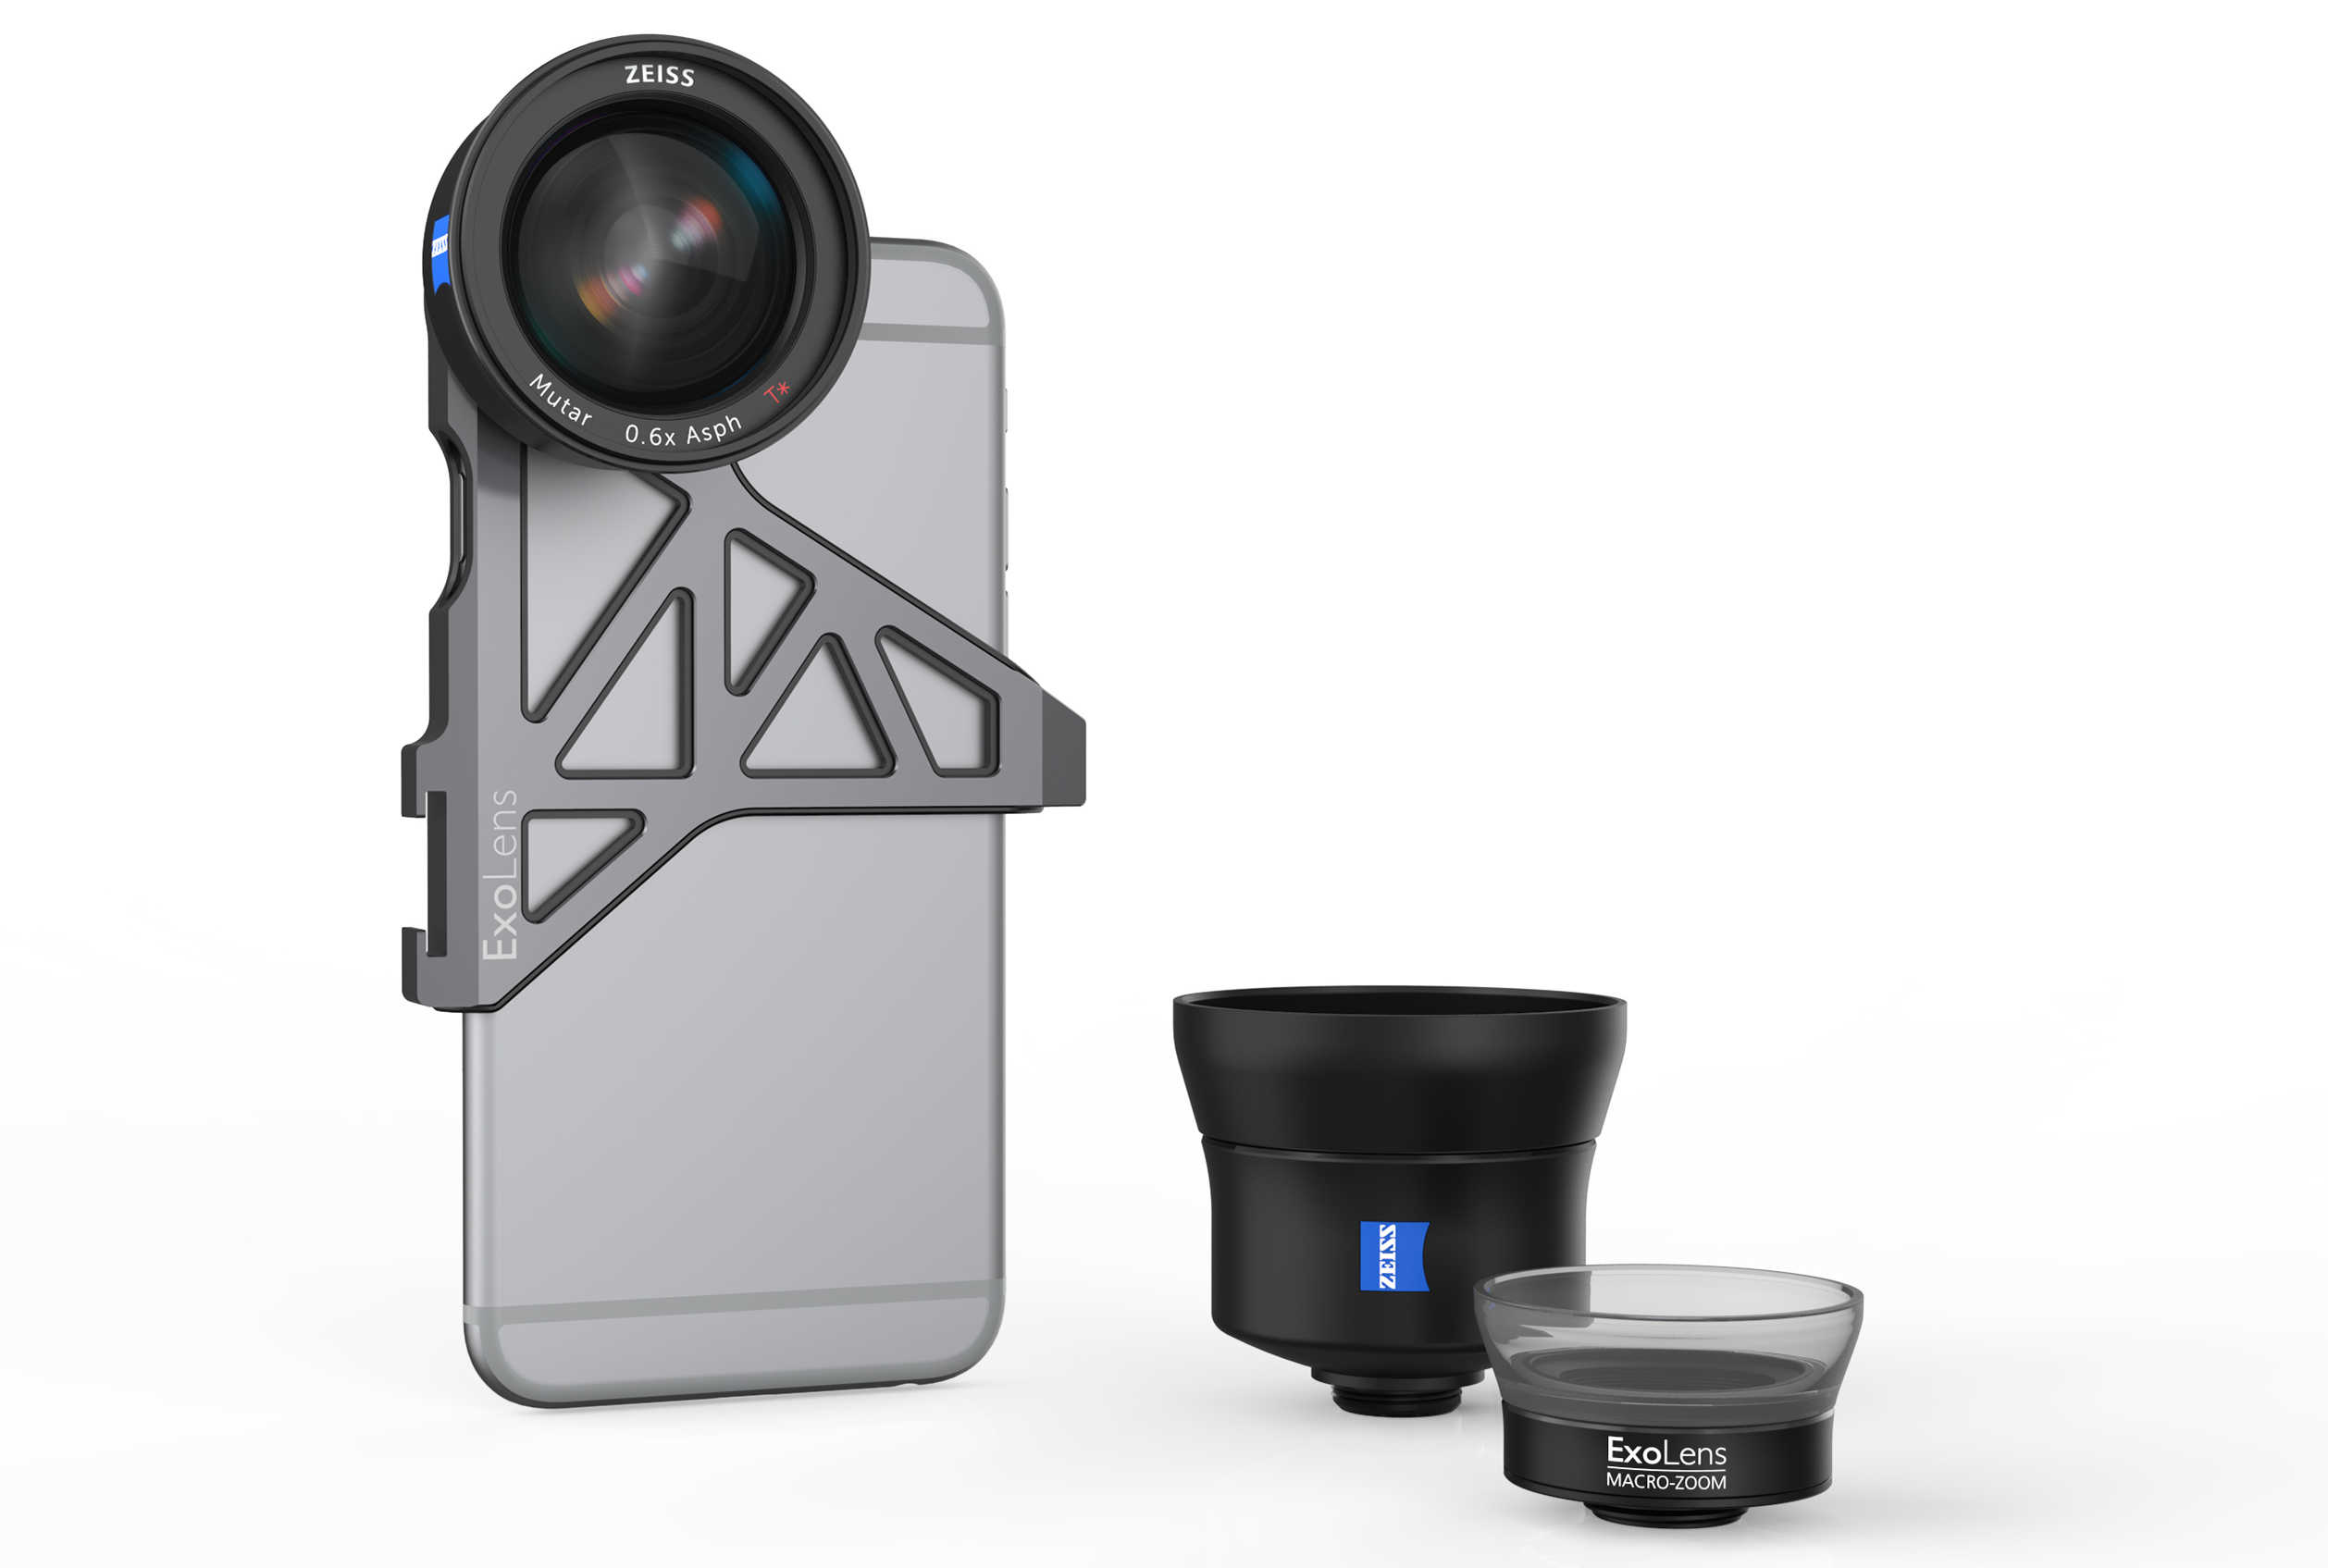 ExoLens, which partnered with ZEISS for a pro line of iPhone lenses last year, will soon offer a protective case for the iPhone 7 to accommodate the lenses.